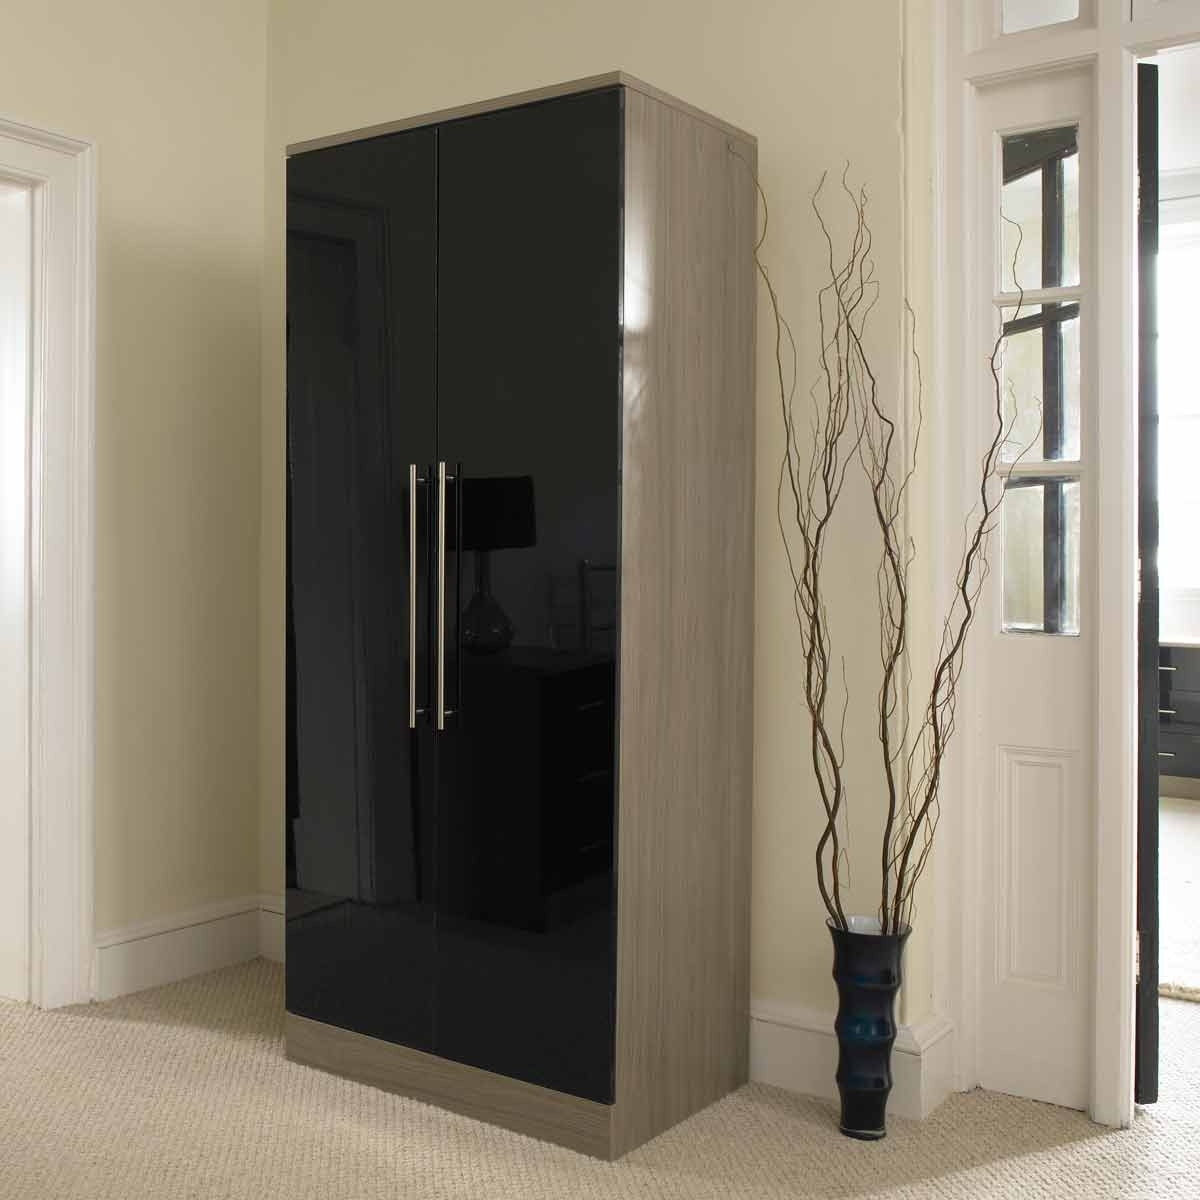 Cheap Black Gloss Wardrobes Intended For Favorite Ready Assembled Wardrobes And Chest Of Drawers Black Gloss For (View 7 of 15)